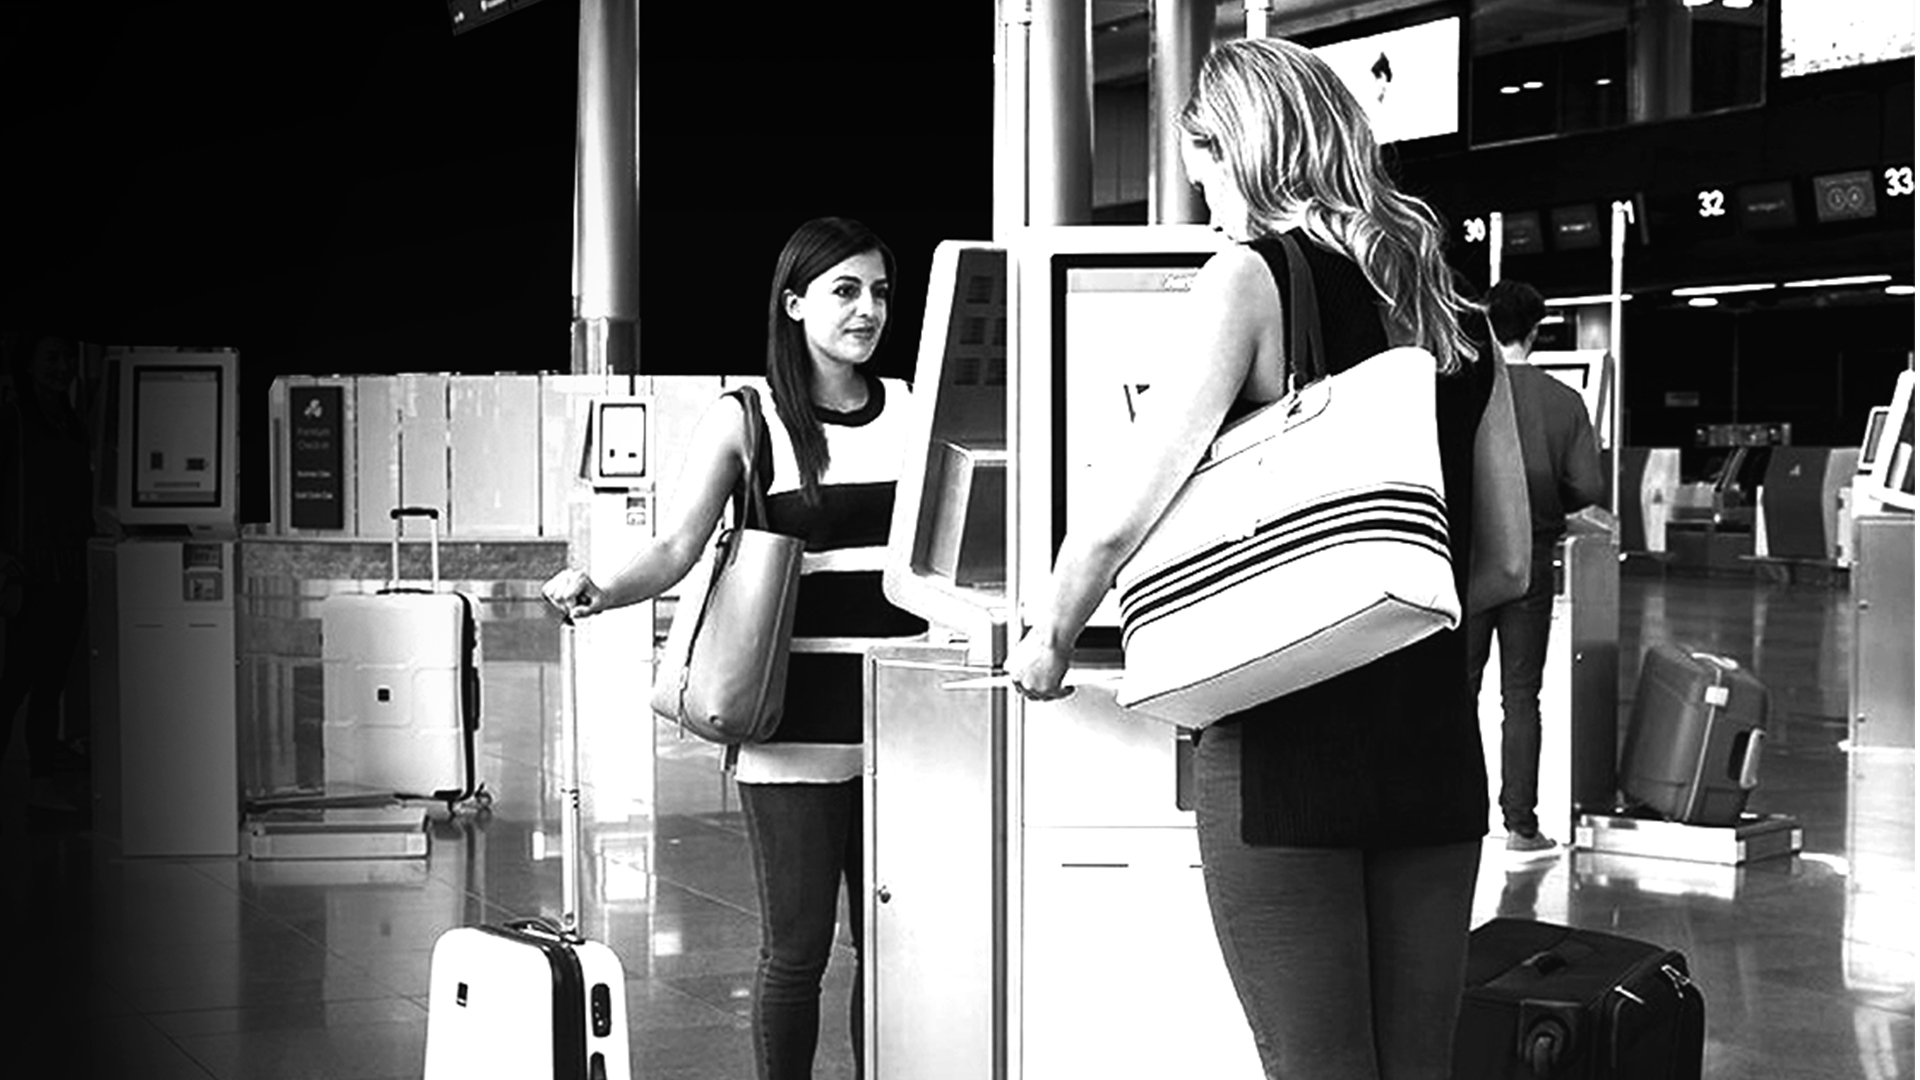 Two women using airport kiosks